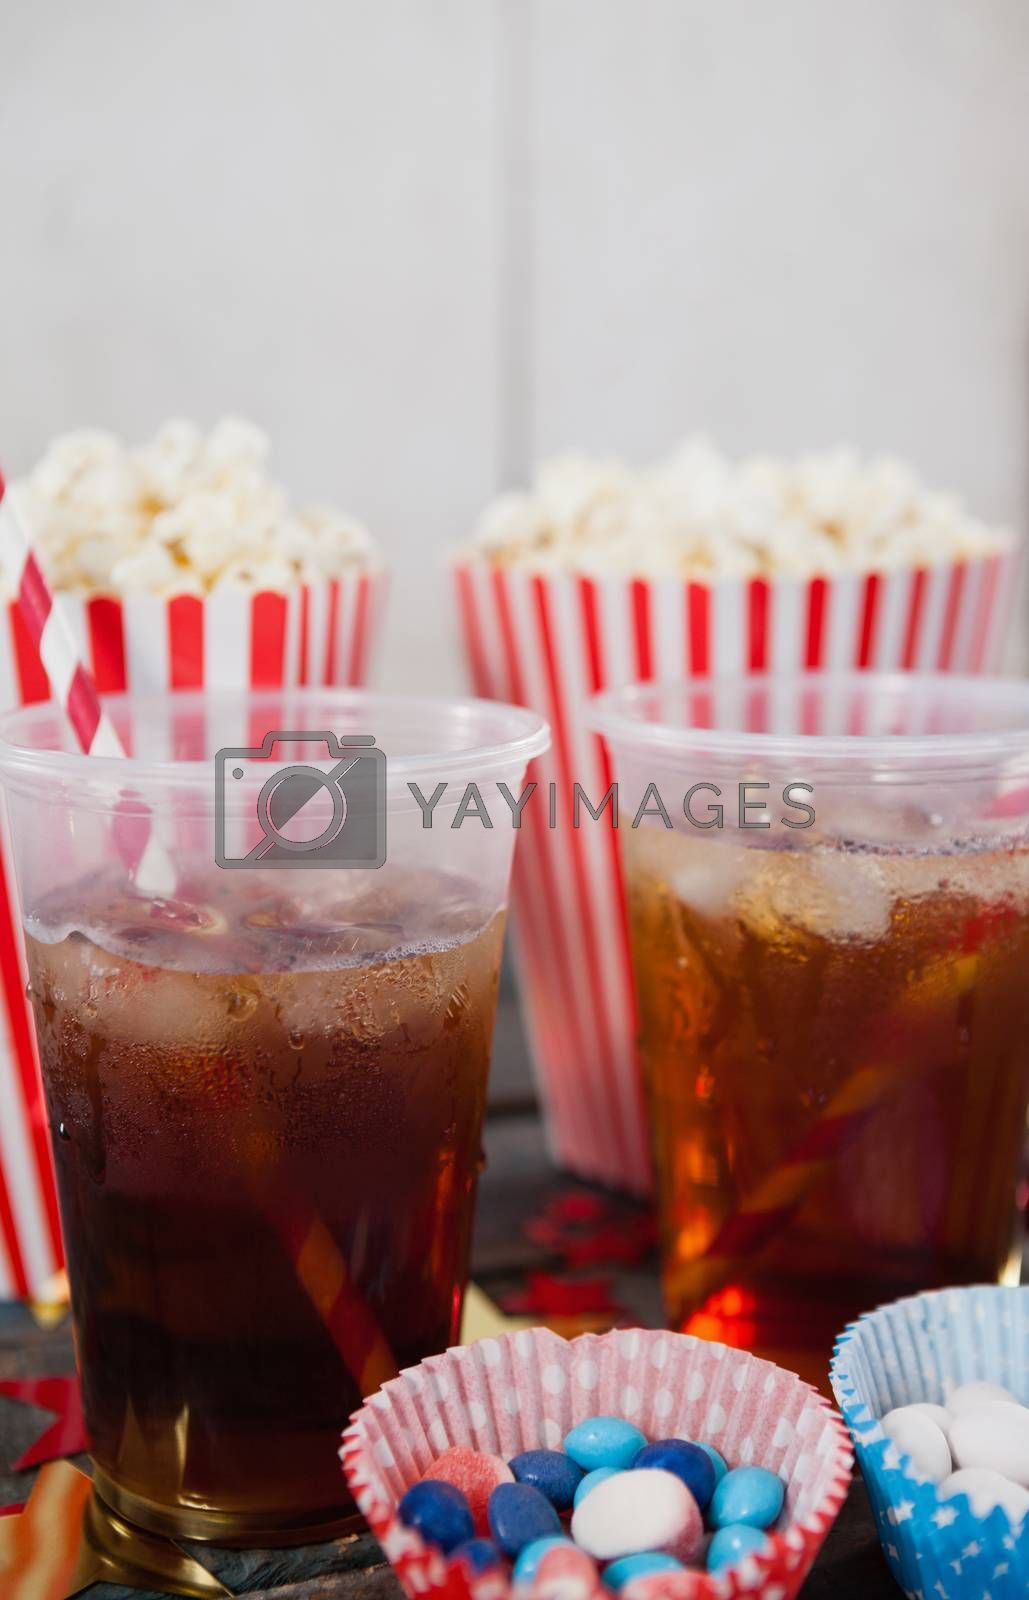 Royalty free image of Popcorn, confectionery and drink with 4th july theme by Wavebreakmedia